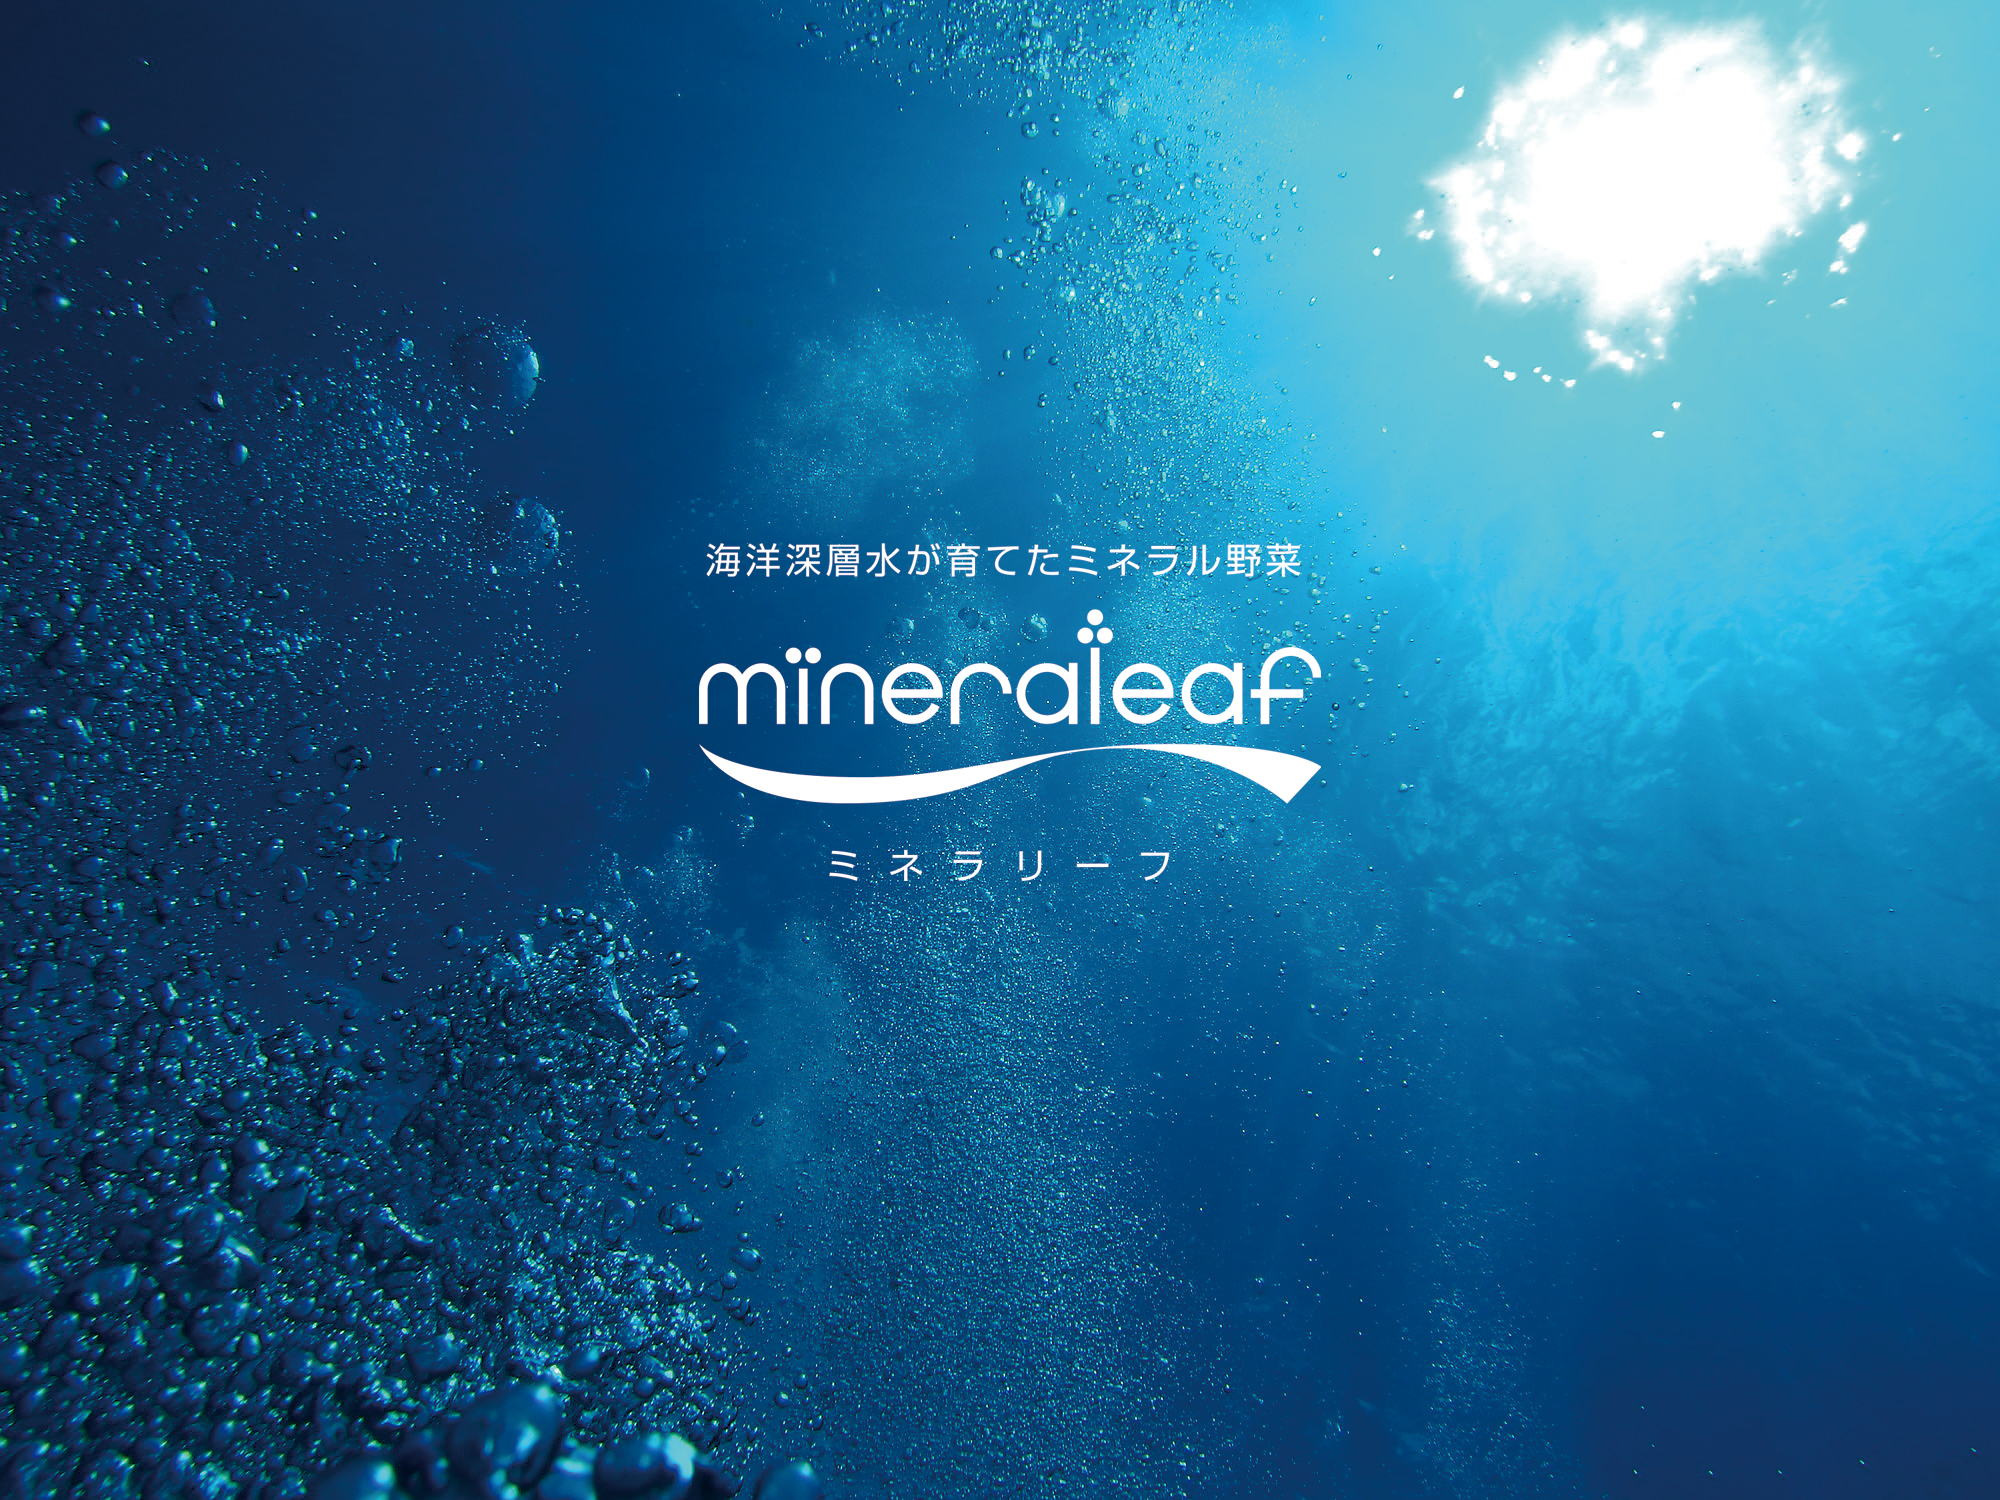 mineraleaf_logo_mini